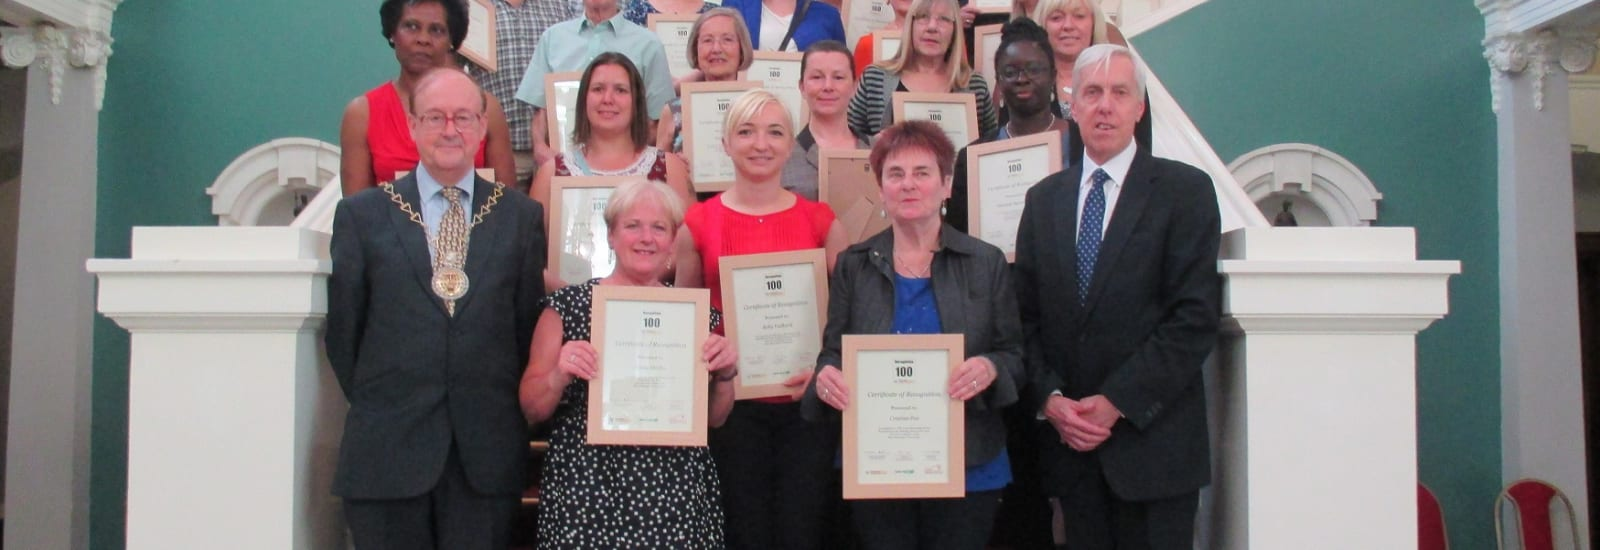 recognition-and-awards-for-volunteers